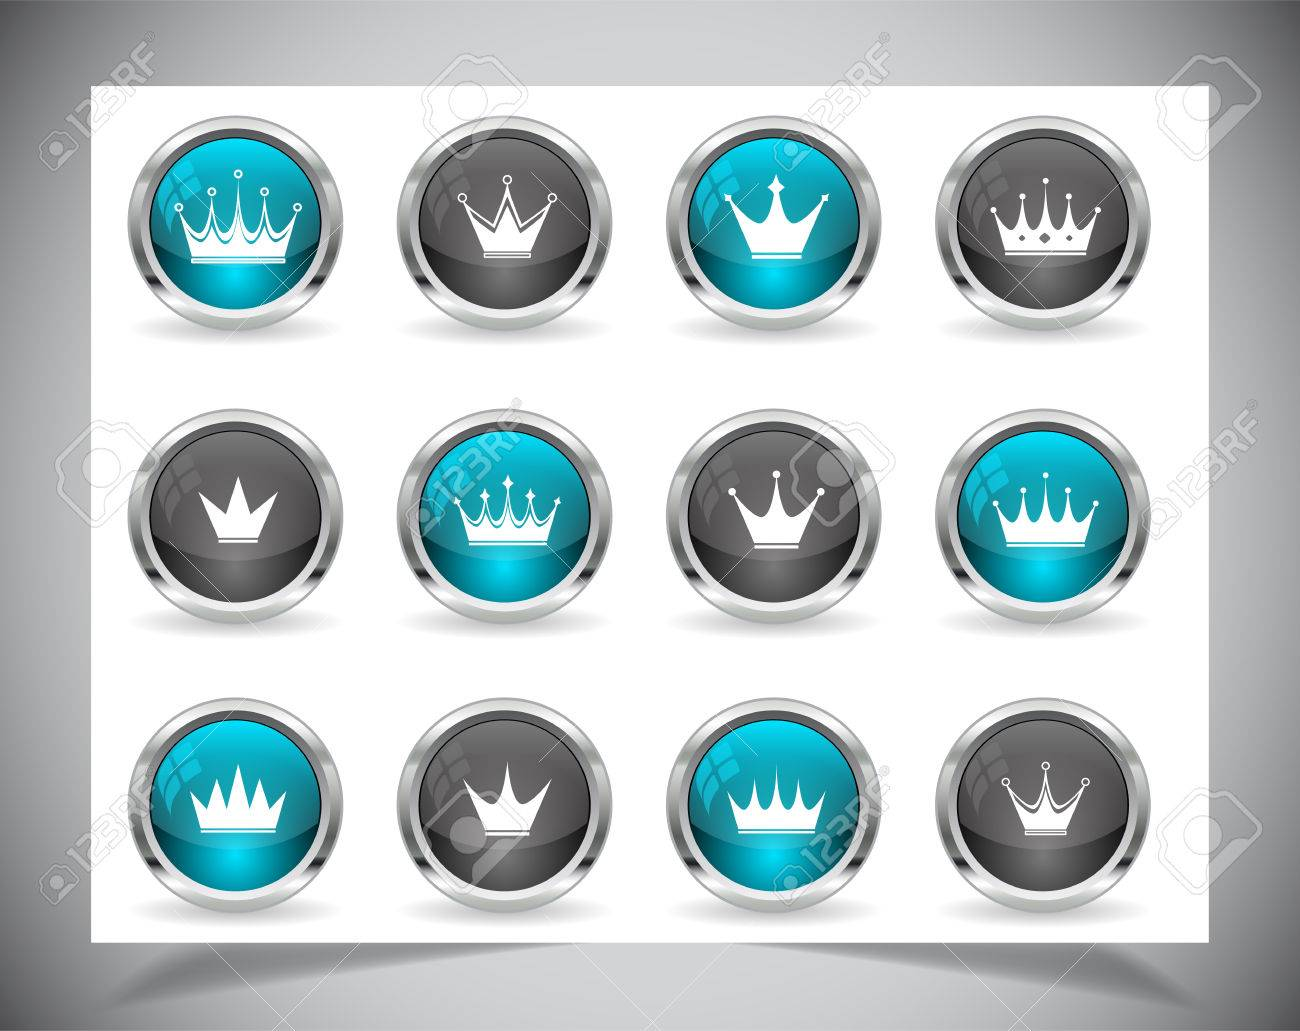 Cool color shiny metal web buttons. Stock Vector - 23522622